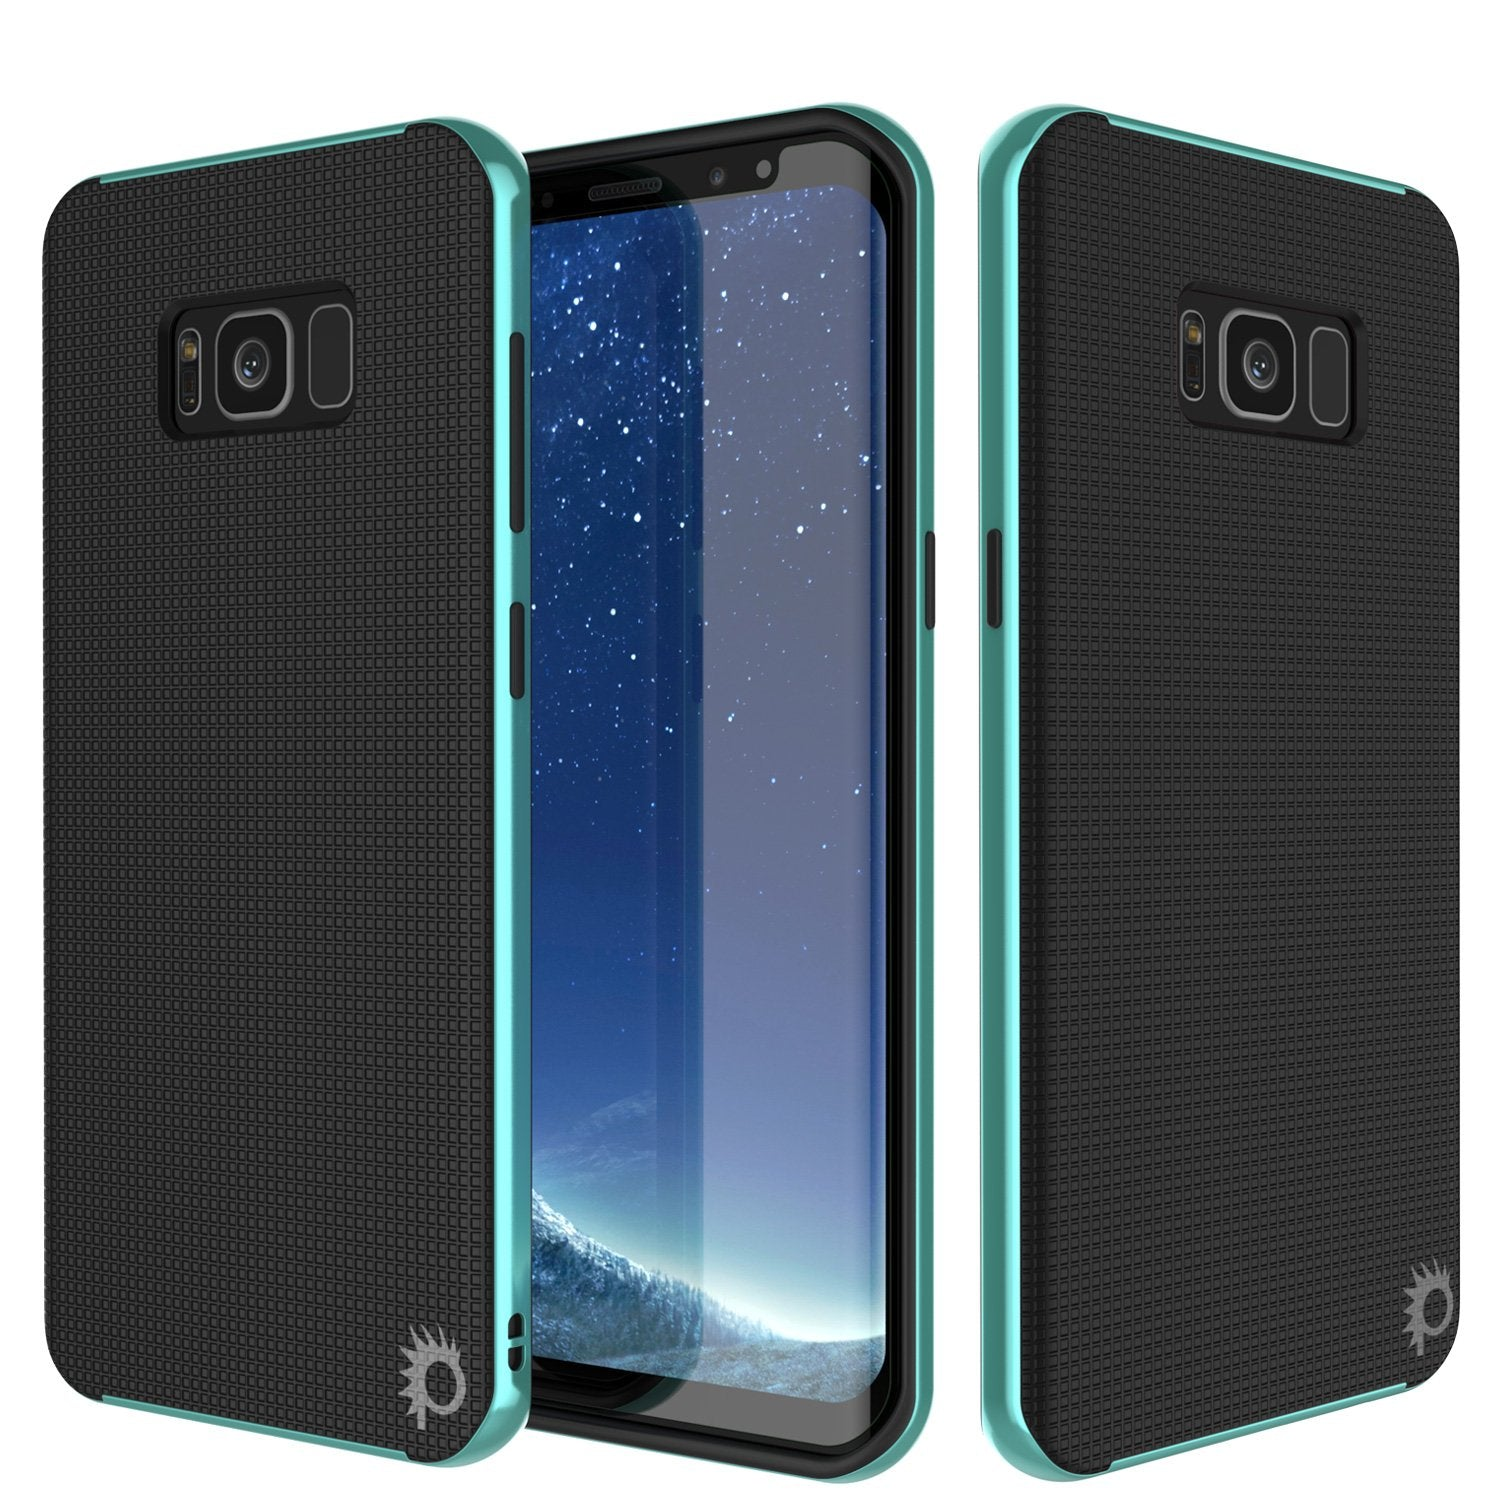 Galaxy S8 PLUS Case, PunkCase [Stealth Series] Hybrid 3-Piece Shockproof Dual Layer Cover [Non-Slip] [Soft TPU + PC Bumper] with PUNKSHIELD Screen Protector for Samsung S8+ [Teal]